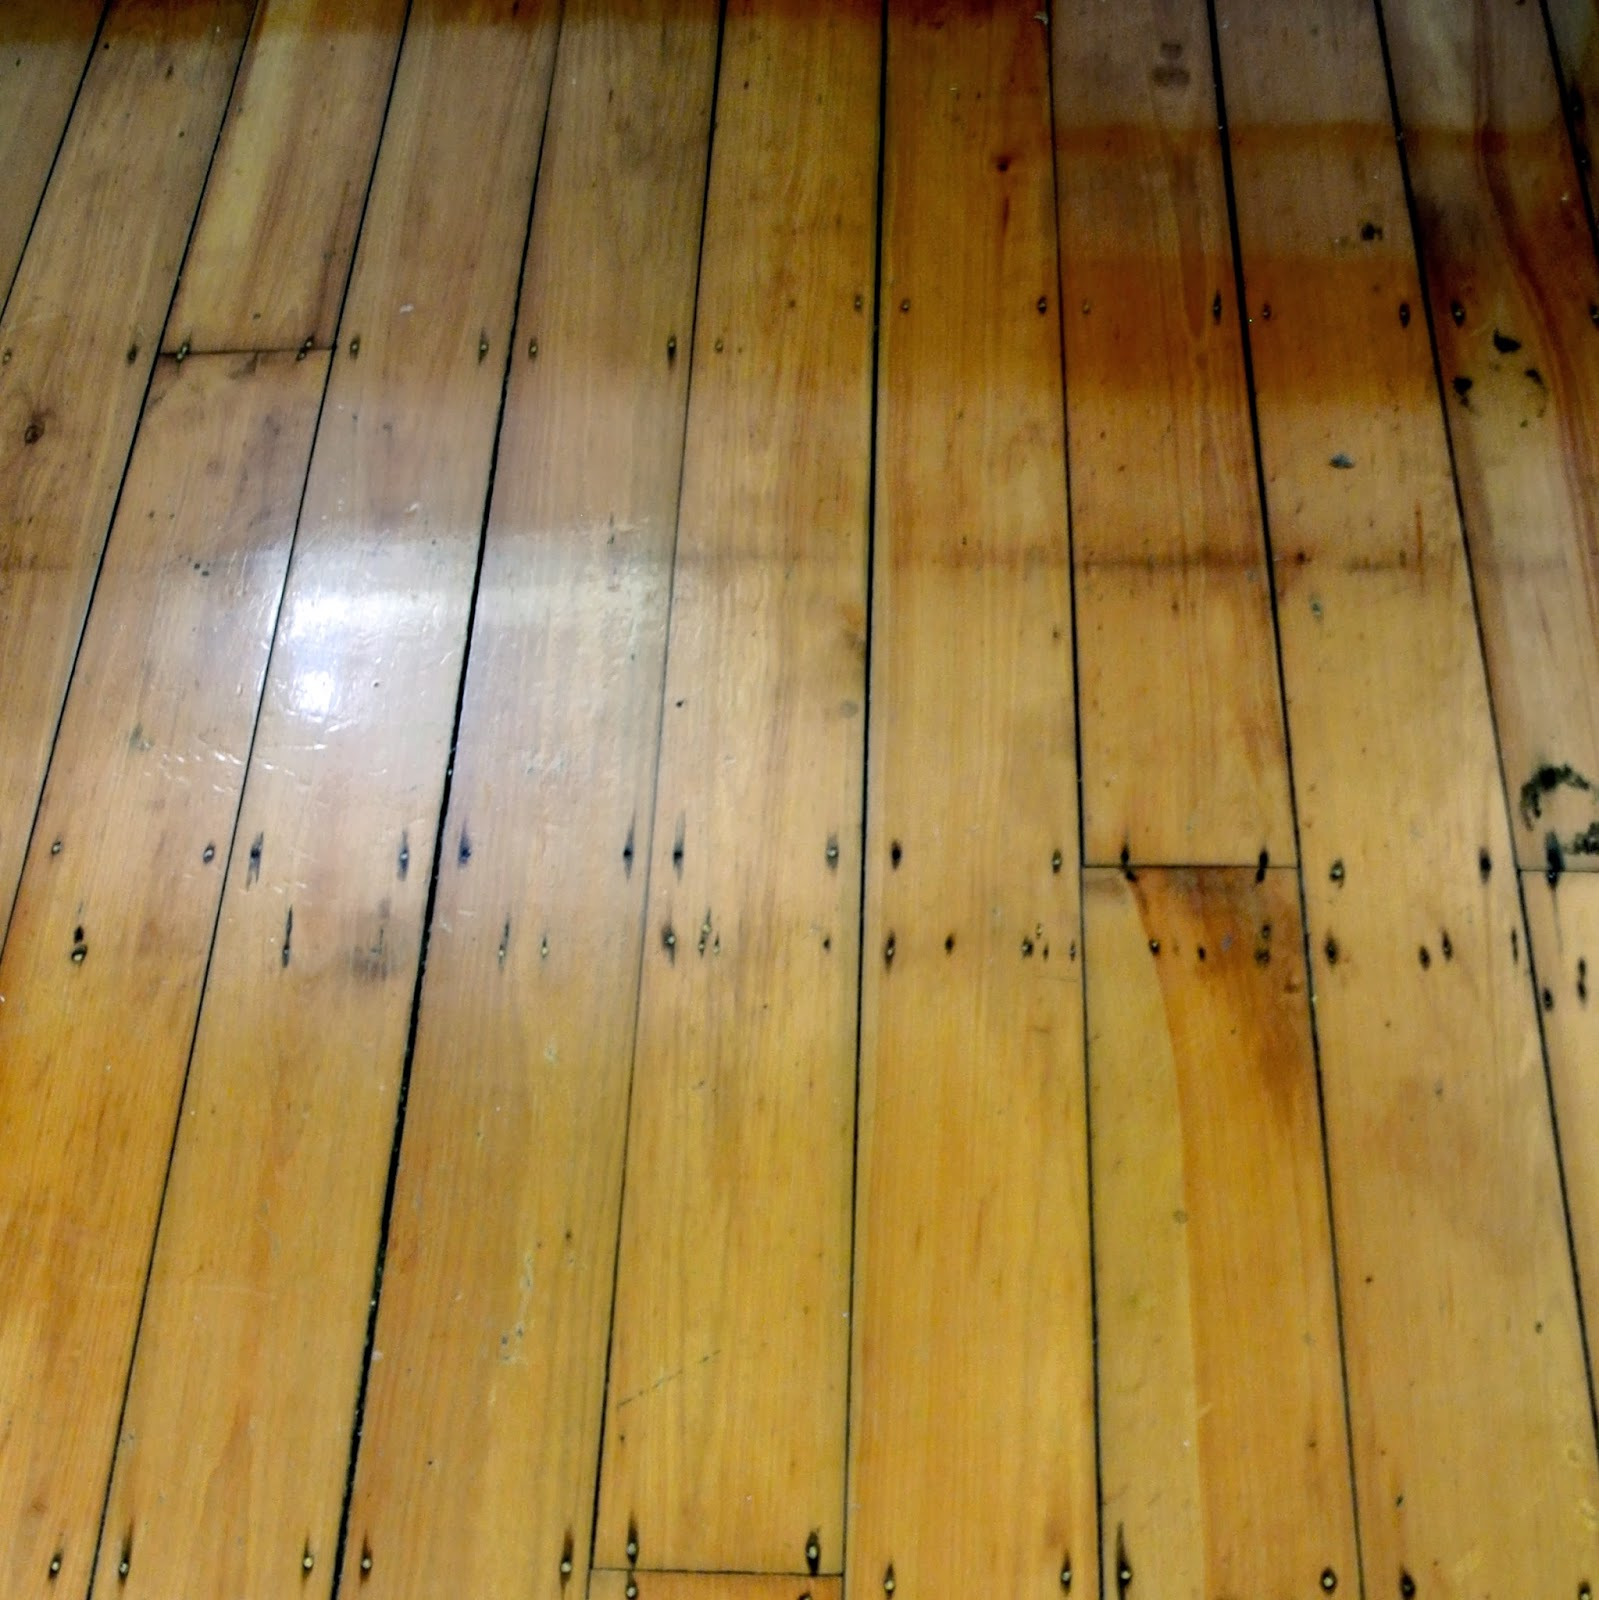 What Causes Buckling And Cupping In Wood Floors: WEST END COTTAGE: Timber Floors And Expansion Joints